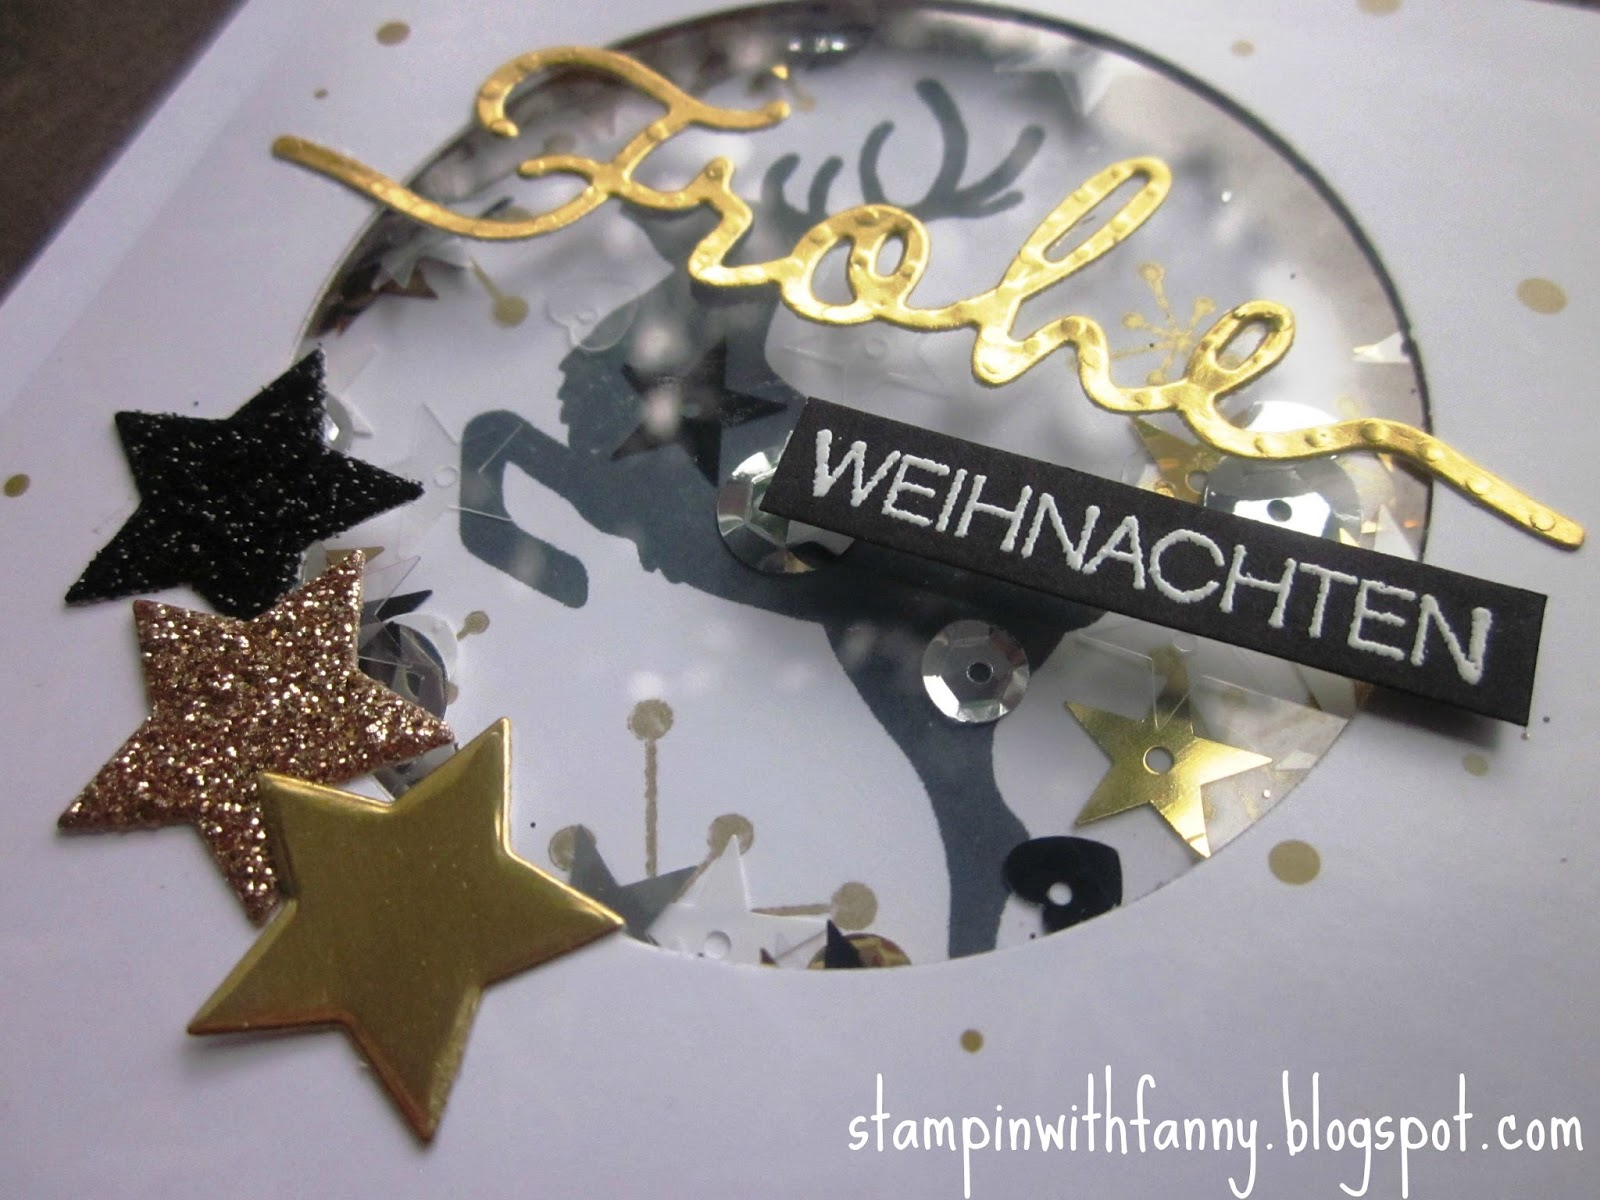 stampin with fanny mts 91 frohe weihnachten in gold. Black Bedroom Furniture Sets. Home Design Ideas